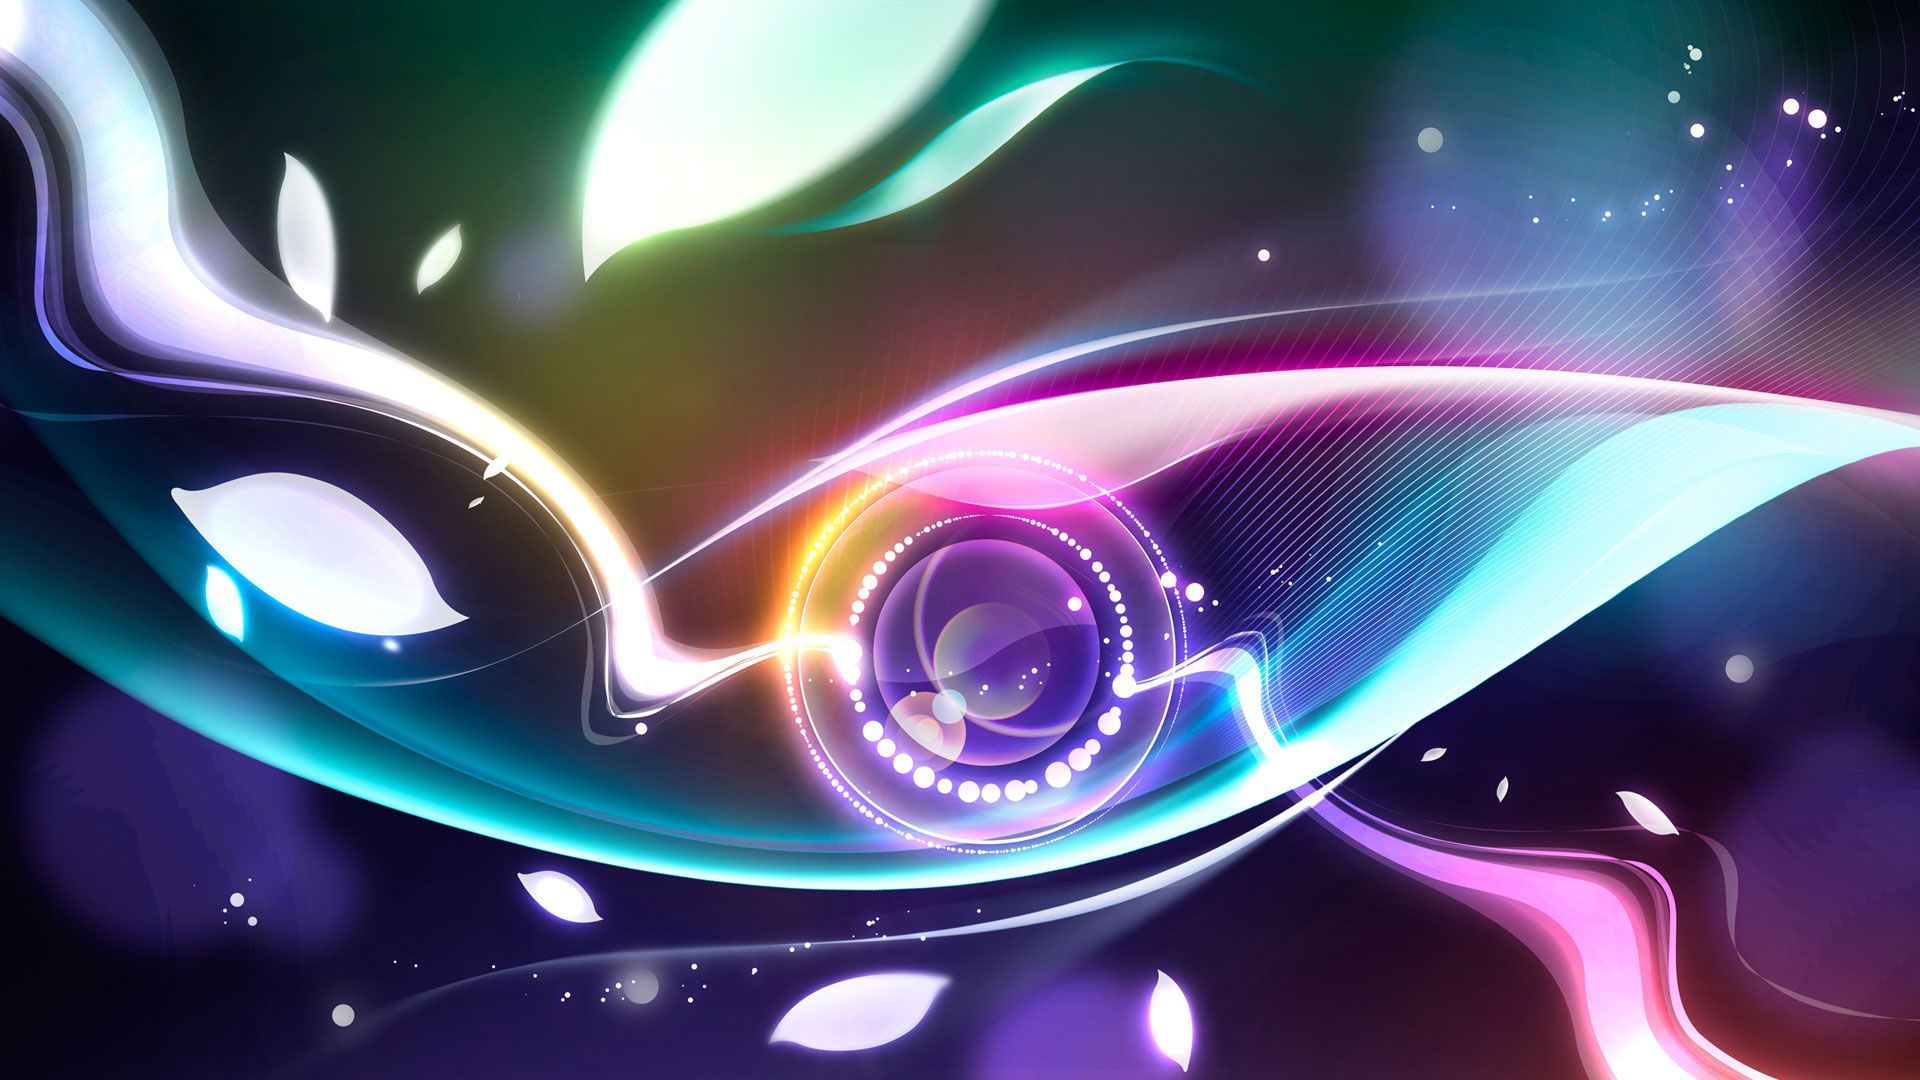 Hd Wallpapers Widescreen 1080p 3d Digital Abstract Eye